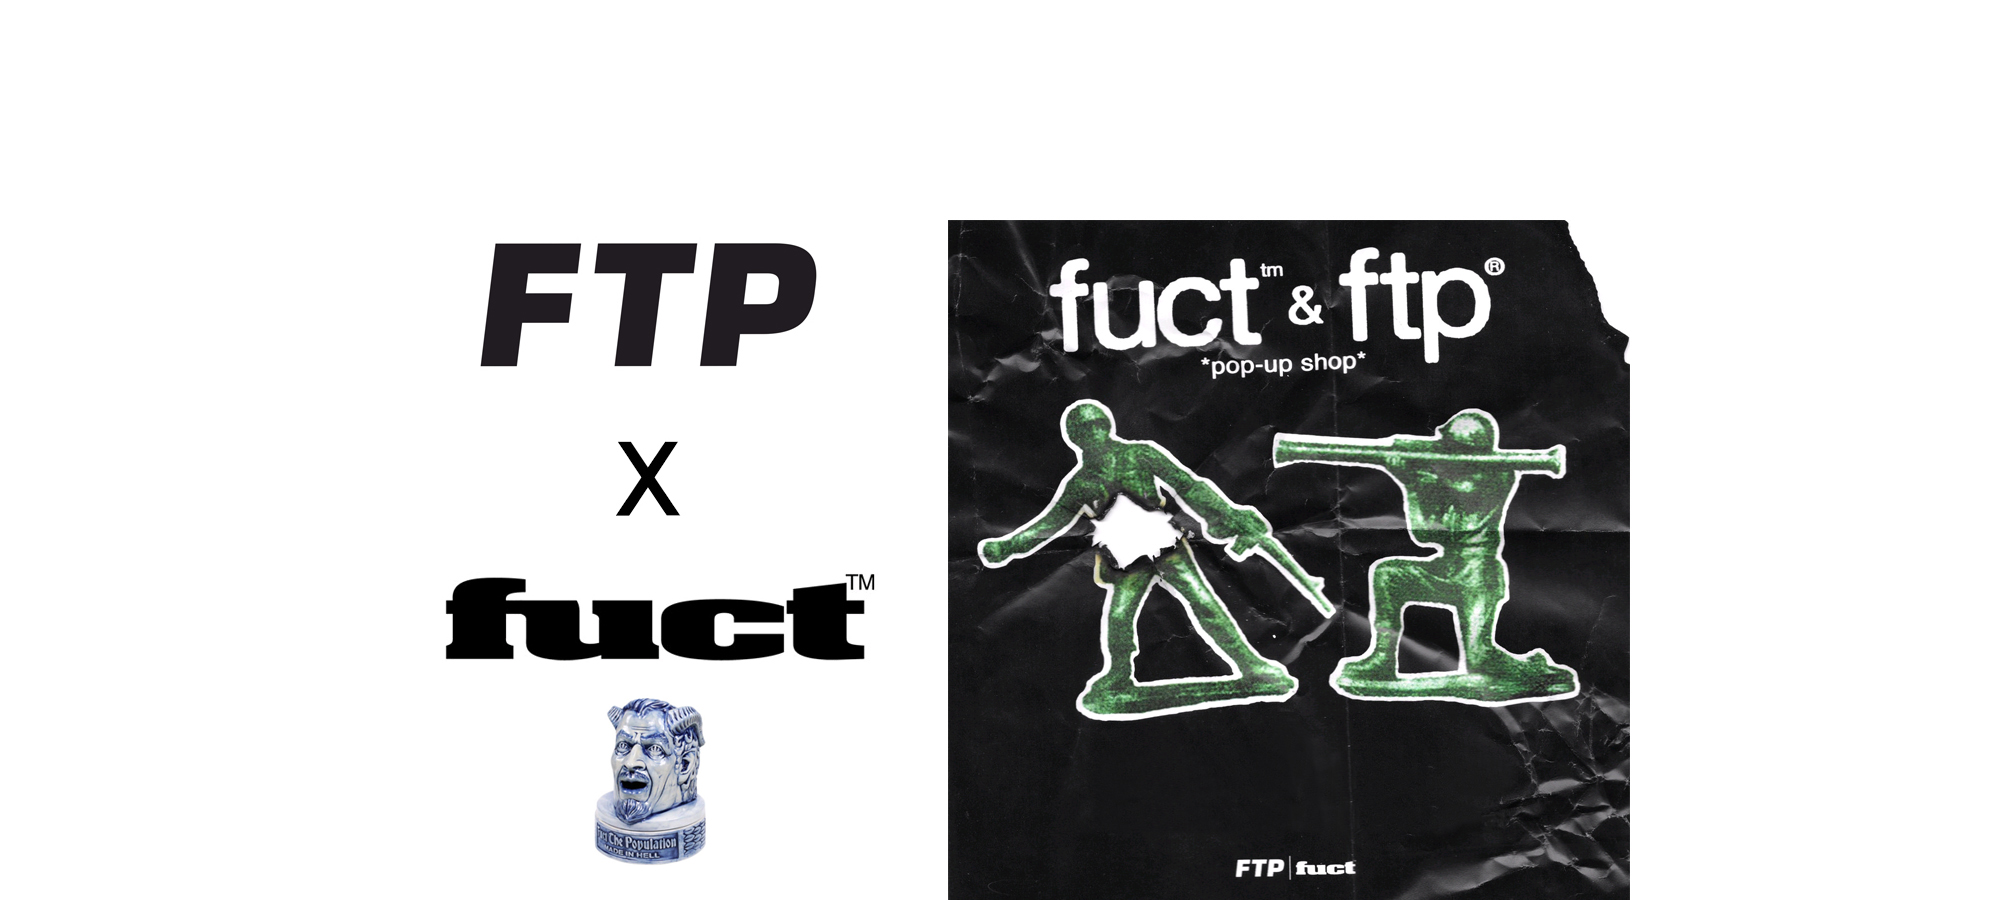 FTP X FUCT